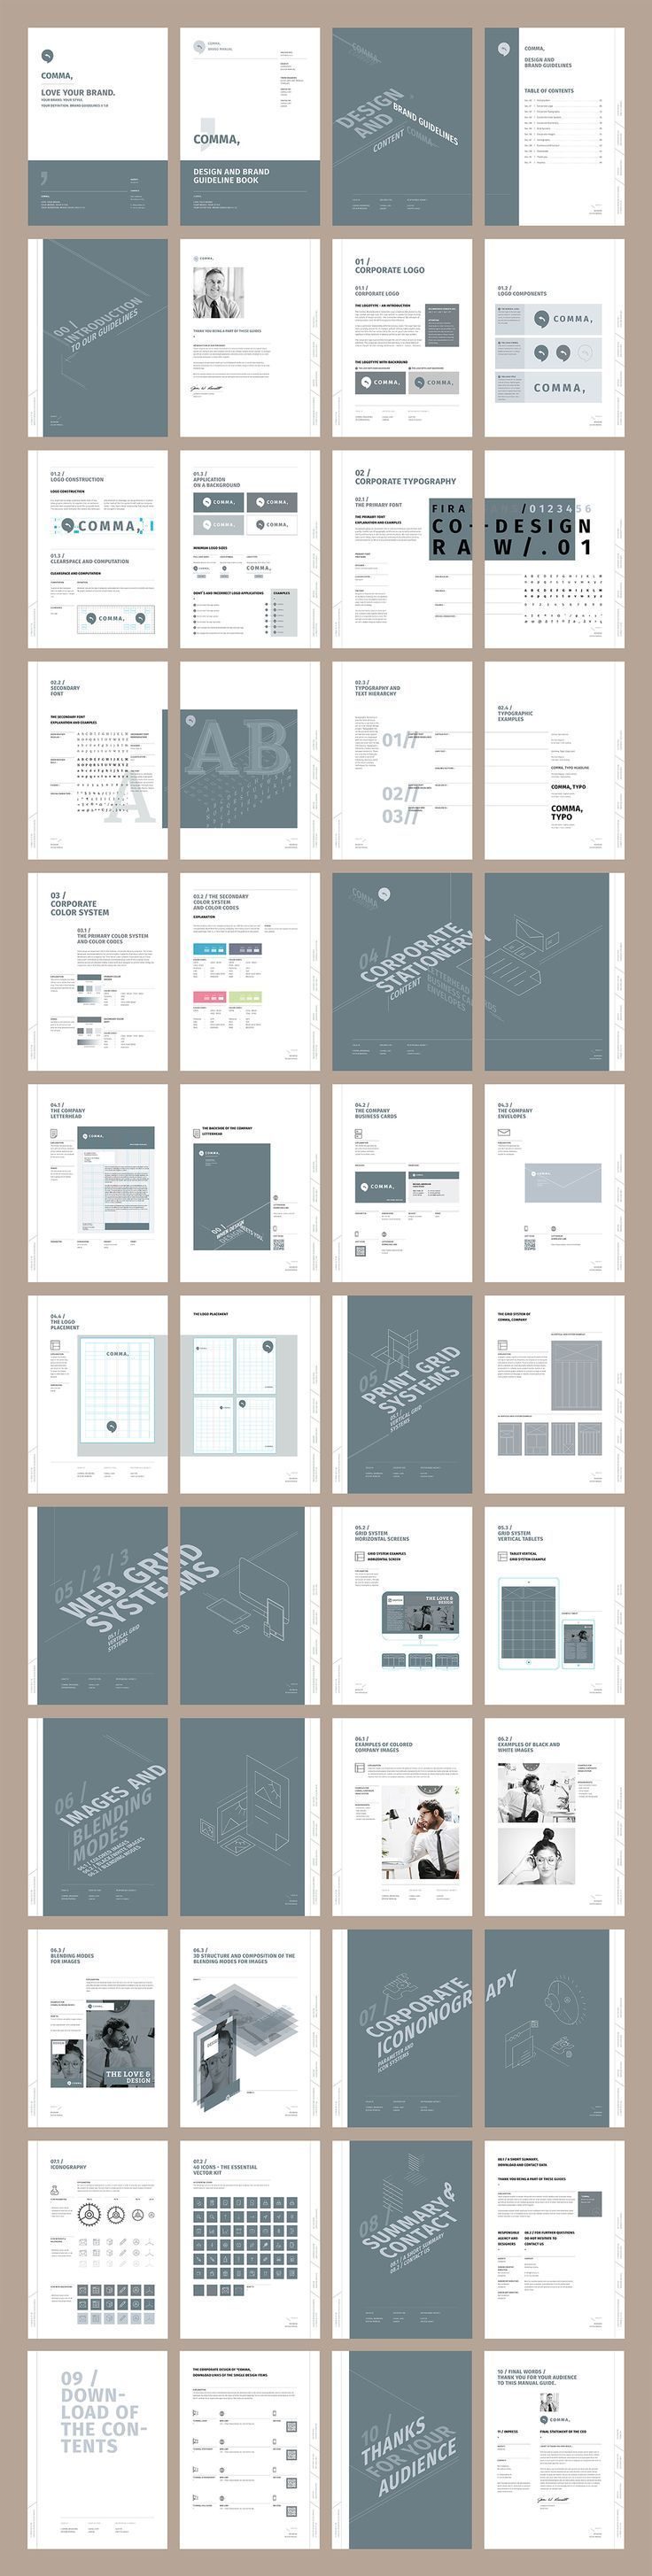 Brand Manual and Identity Template – Corporate Design Brochure – with 48 Pages and Real Text!!!Minimal and Professional Brand Manual and Identity Brochure template for creative businesses, created in Adobe InDesign in International DIN A4 and US Letter…. If you're a user experience professional, listen to The UX Blog Podcast on iTunes.